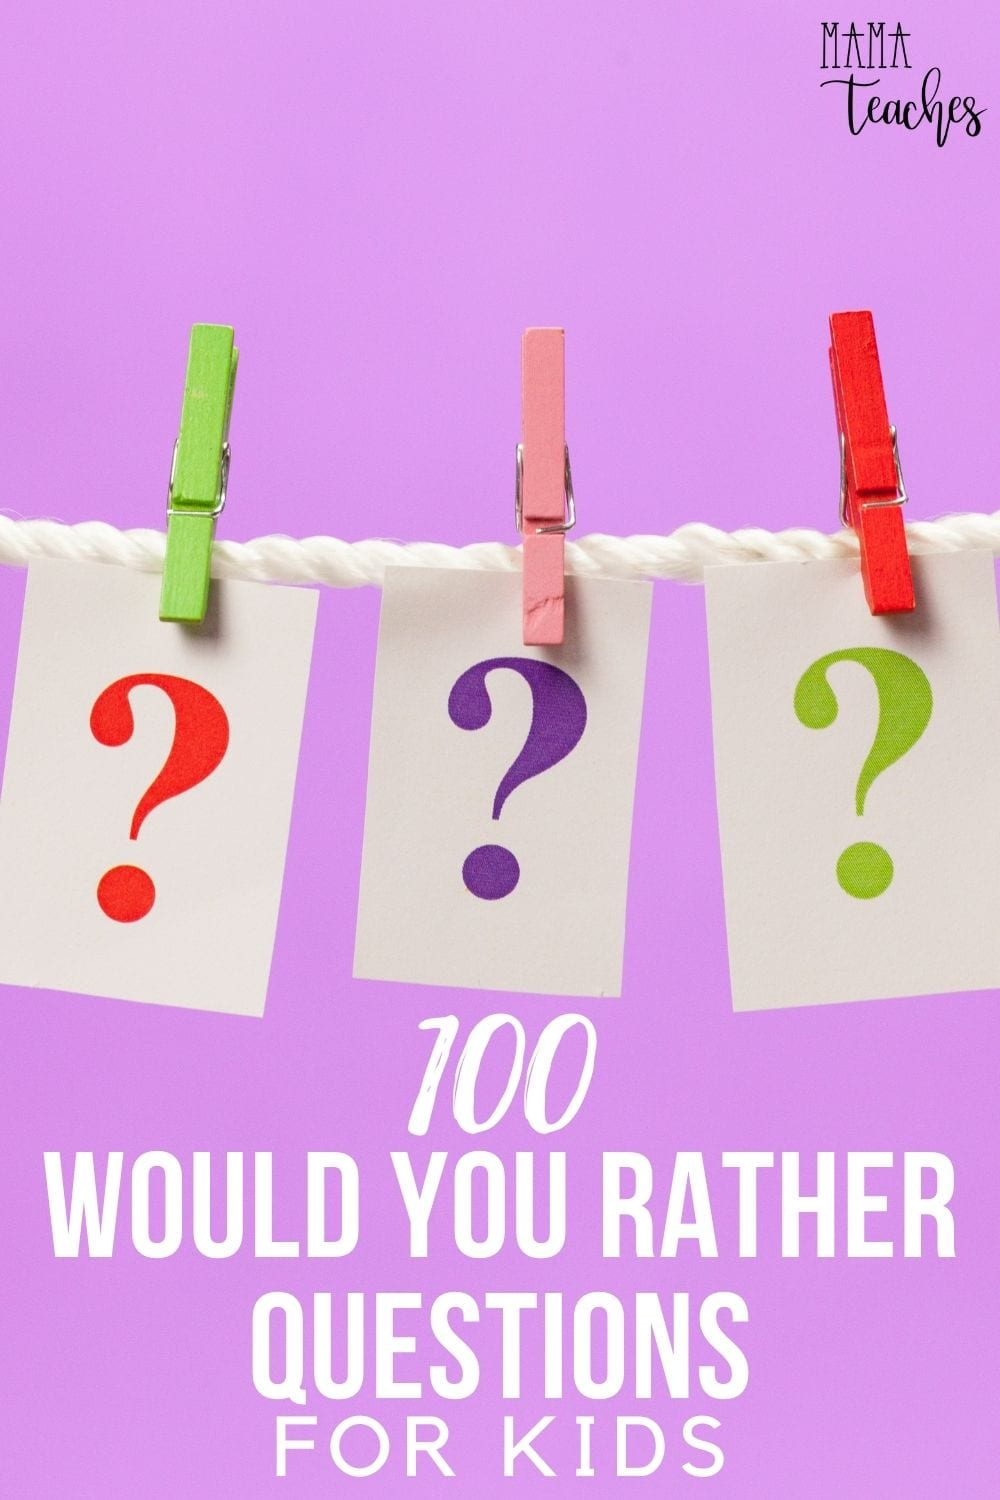 100 Would You Rather Questions for Kids - A fun game for home or school